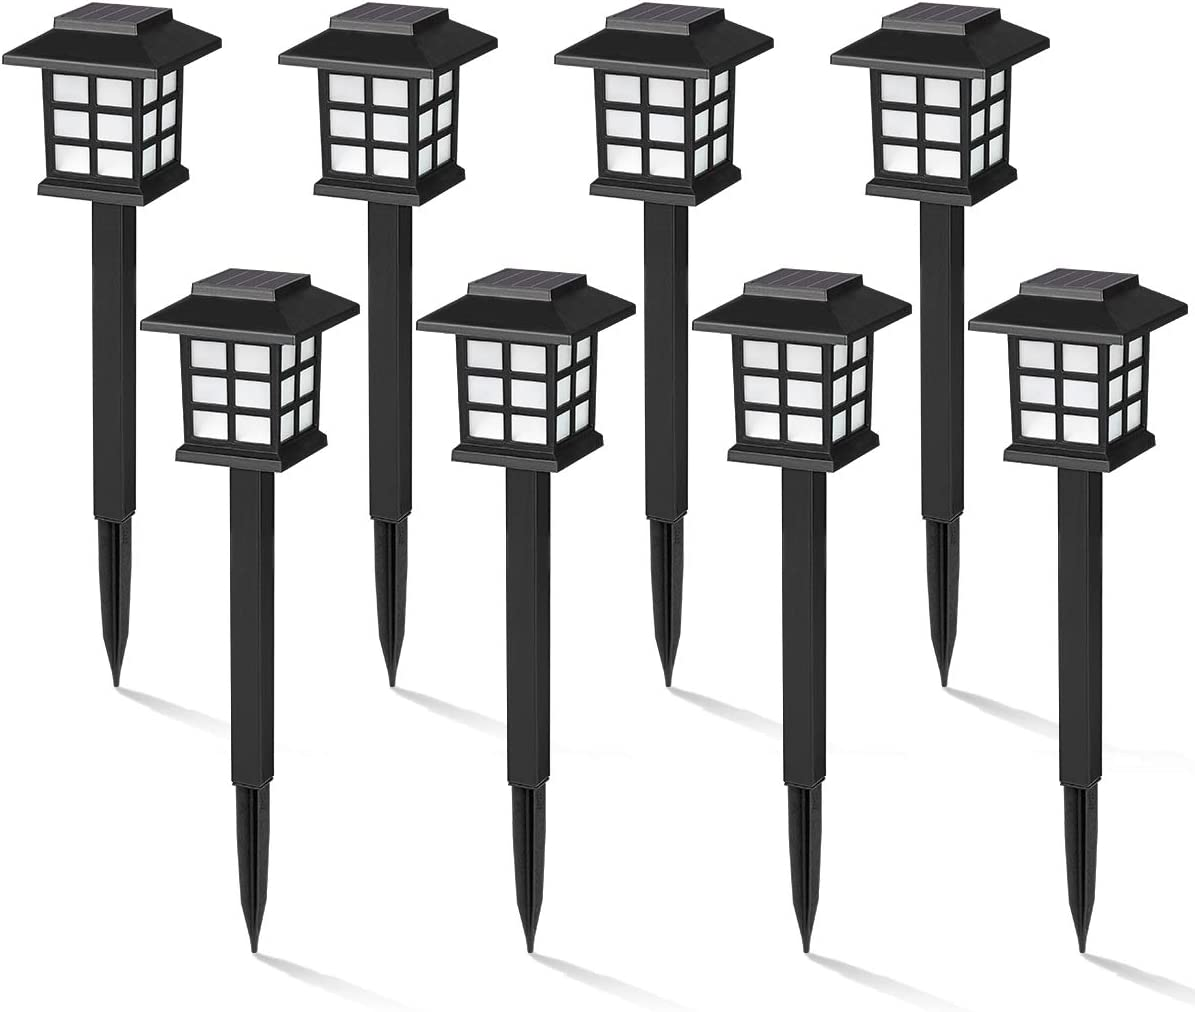 GIGALUMI 8 Pack Solar Pathway Lights Outdoor, Waterproof Outdoor Solar Lights for Garden, Landscape, Path, Yard, Patio, Driveway, Walkway